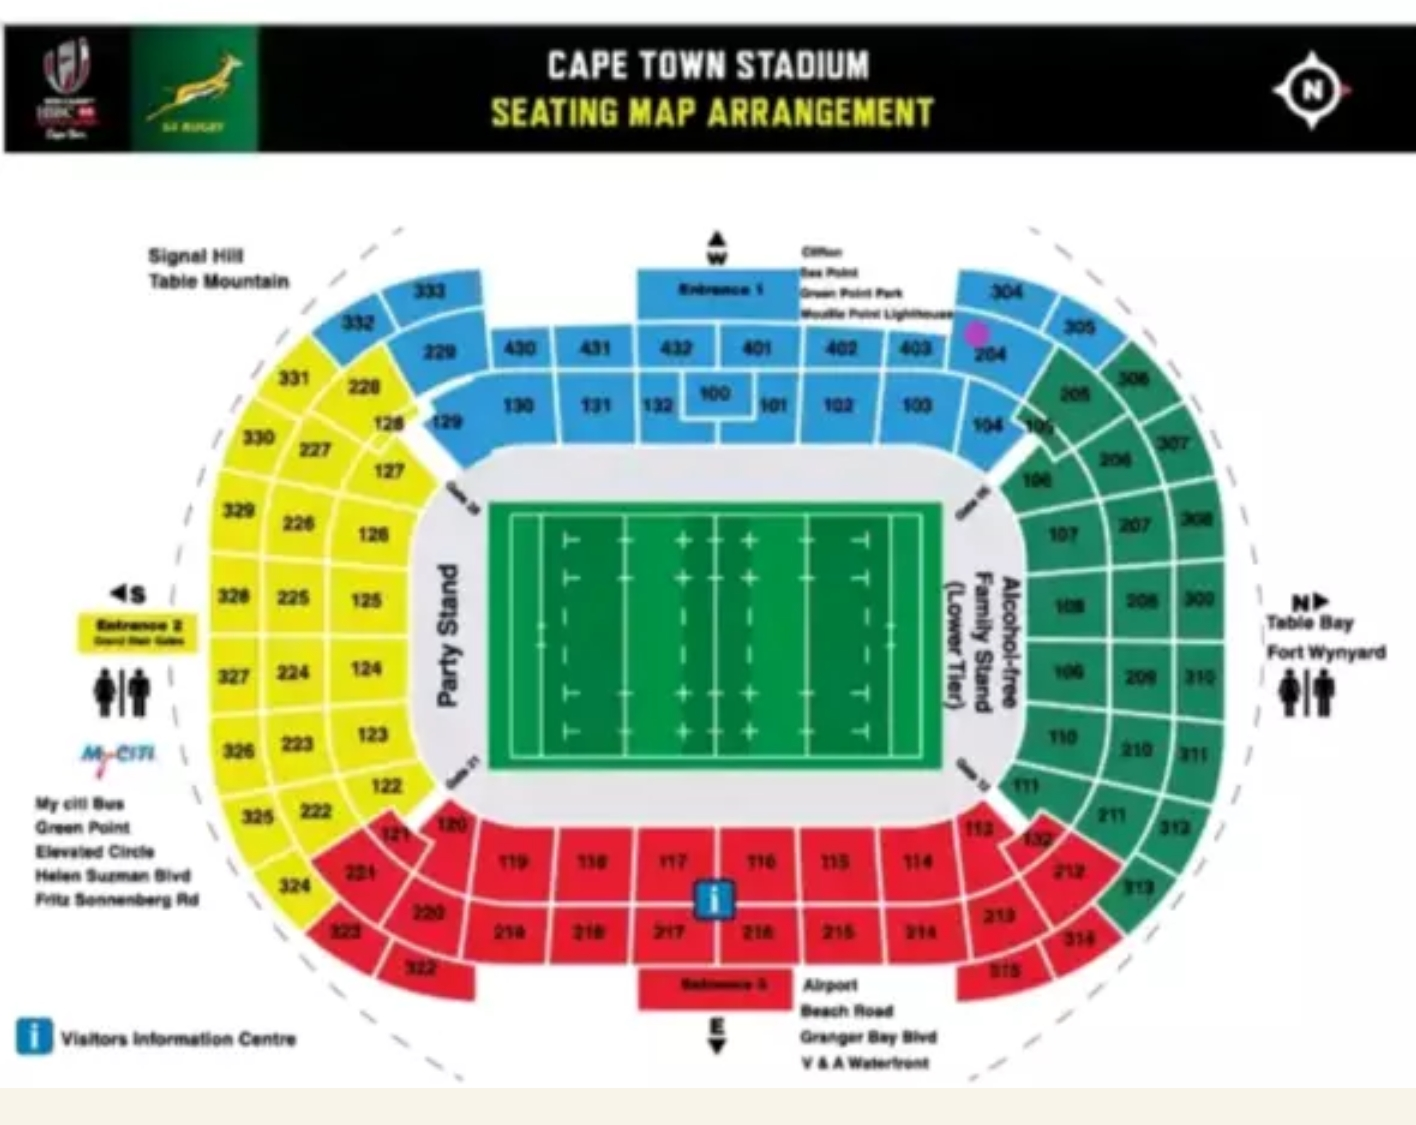 HSBC SEVENS rugby tickets in Cape Town on 15 December 2019